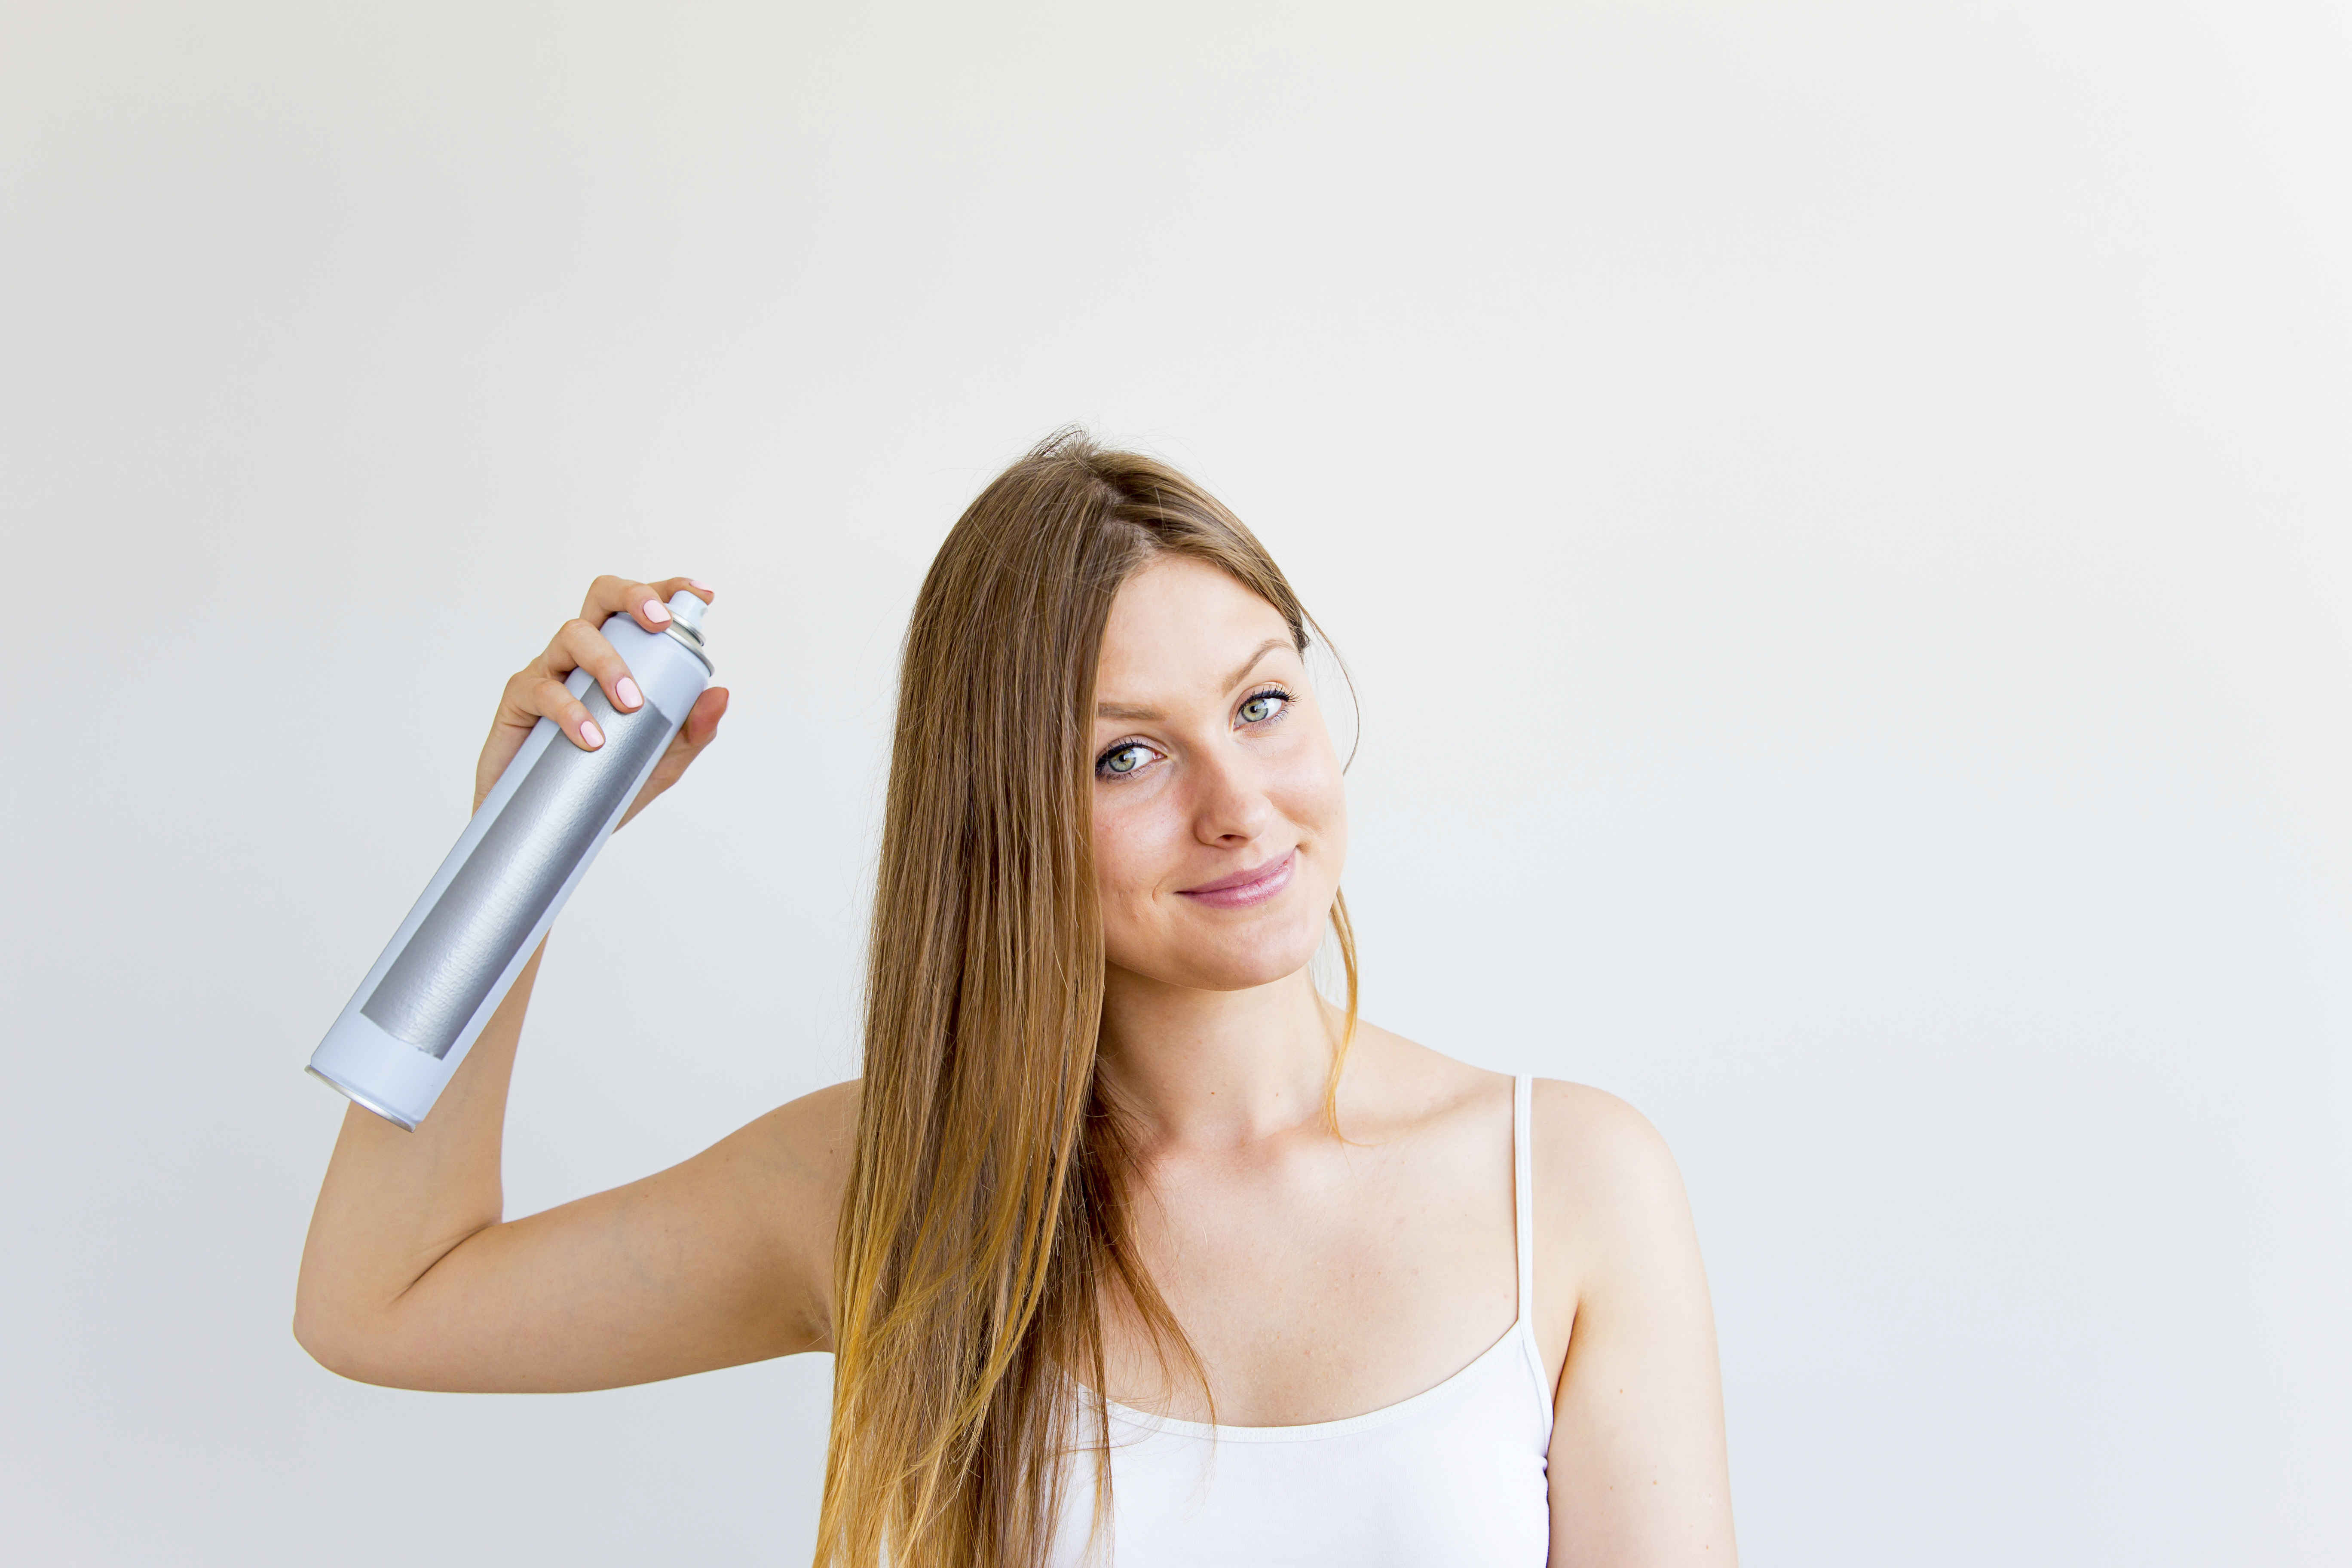 5 Tips for Using Dry Shampoo